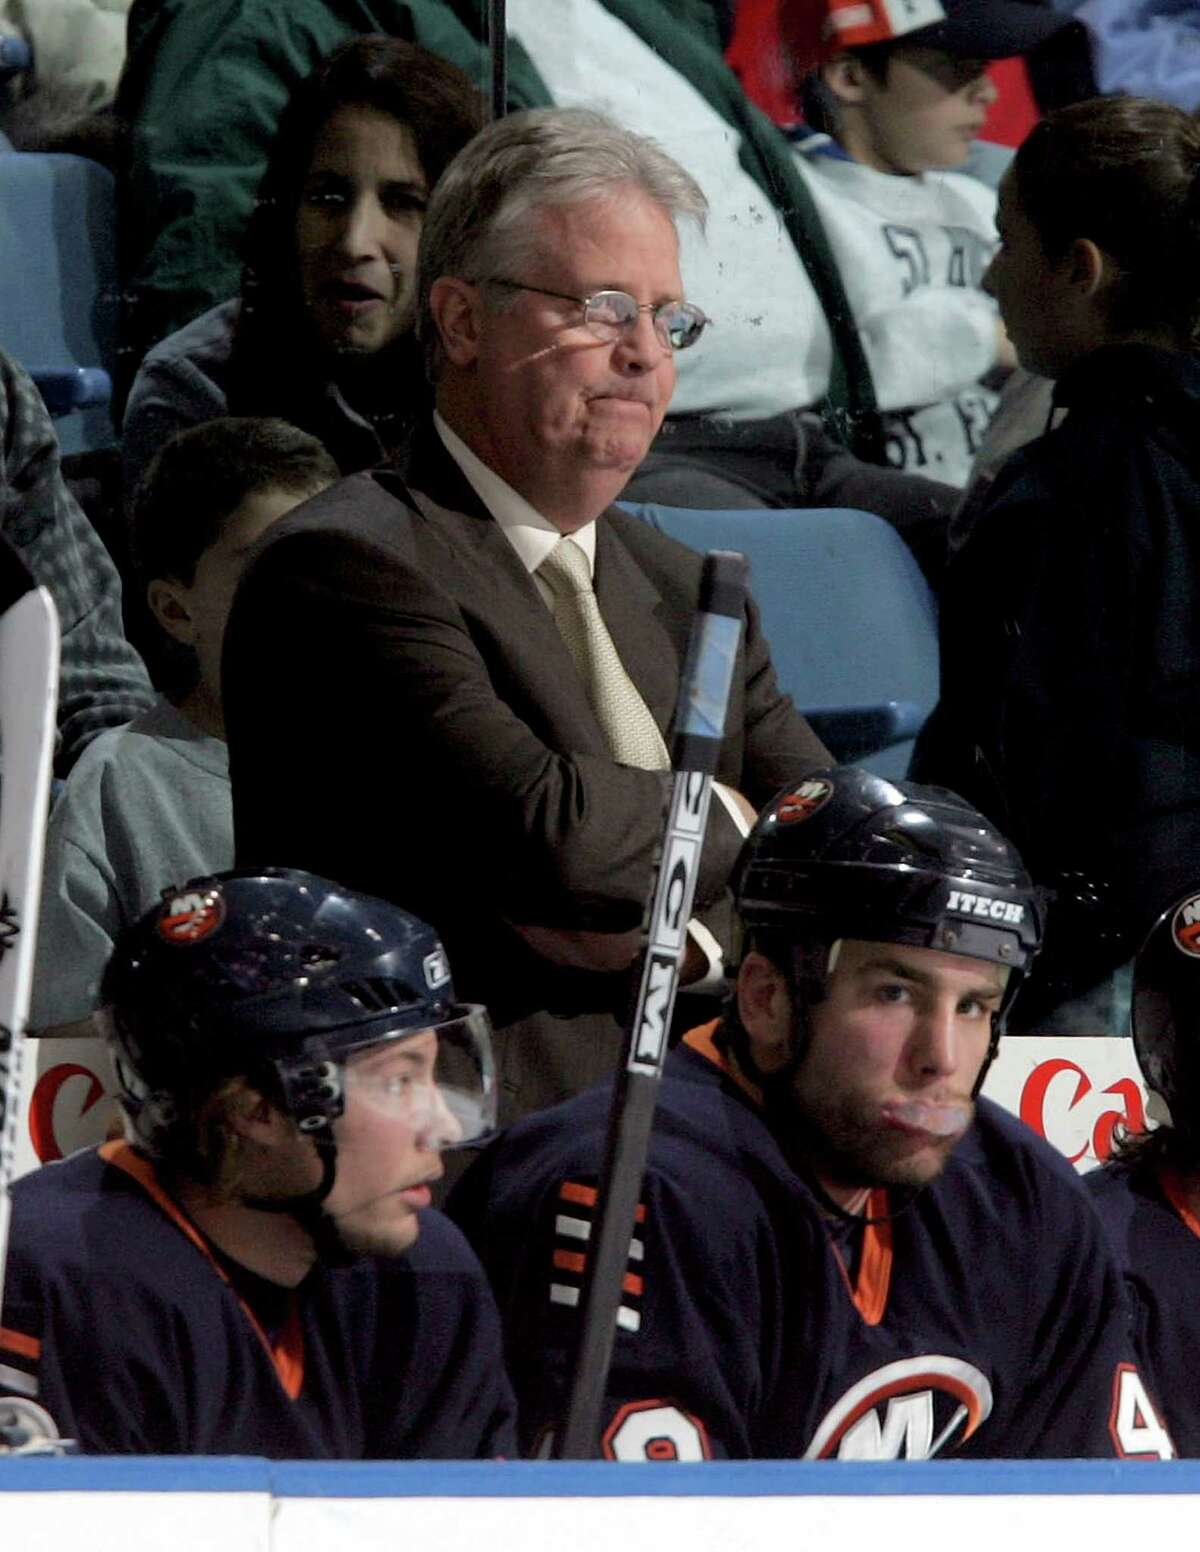 UNIONDALE, NY - NOVEMBER 25: Head coach Steve Stirling of the New York Islanders looks on during the game against the Ottawa Senators on November 25, 2005 at Nassau Coliseum in Uniondale, New York. The Sens defeated the Isles 6-2. (Photo by Jim McIsaac/Getty Images)